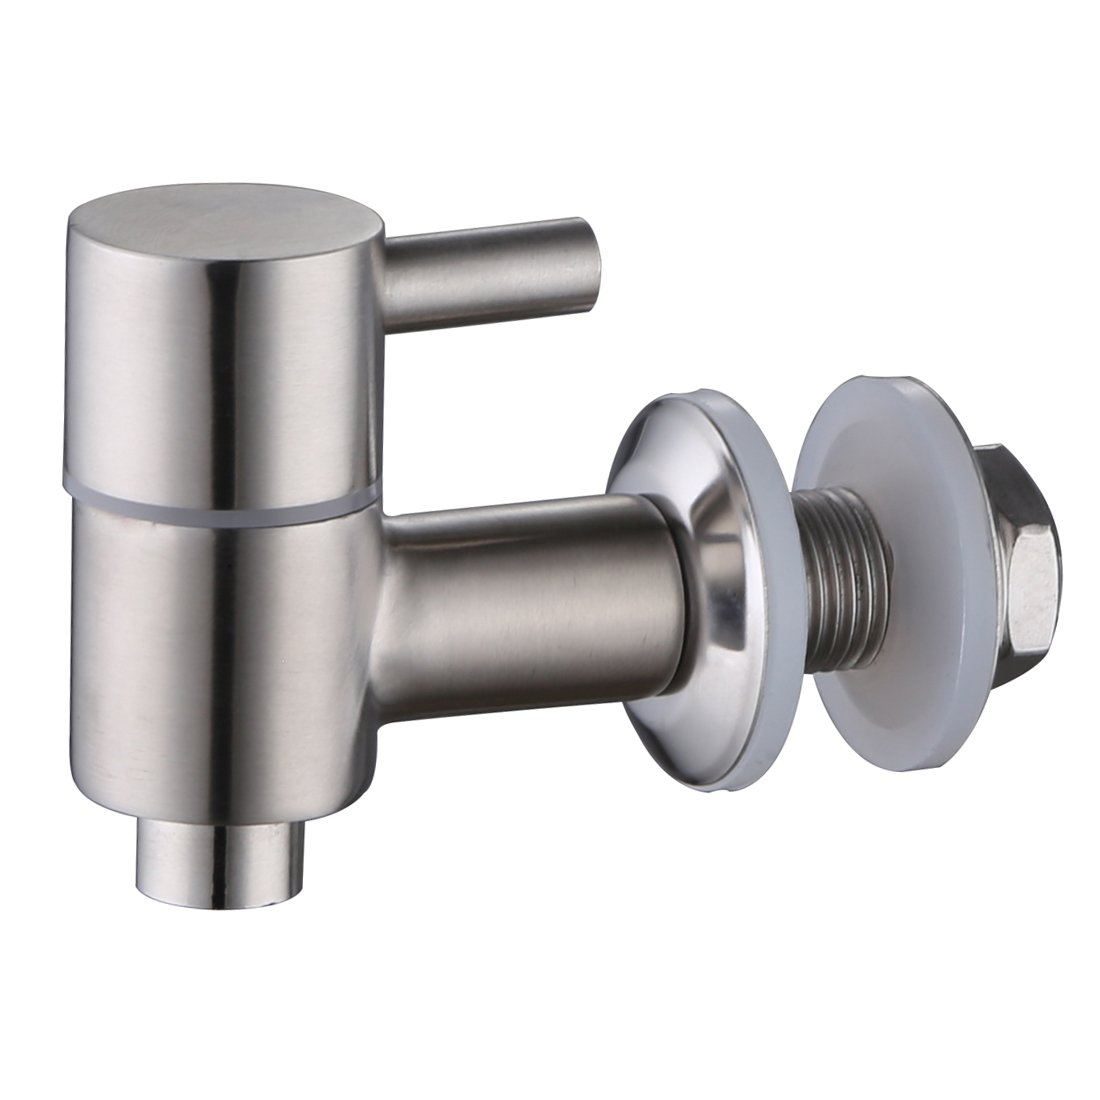 Lyty Stainless Steel Beverage Dispenser Spigot/Faucet/Tap (Brushed Stainless Finish, Ceramic Valve) Fits 5/8 Inch Opening